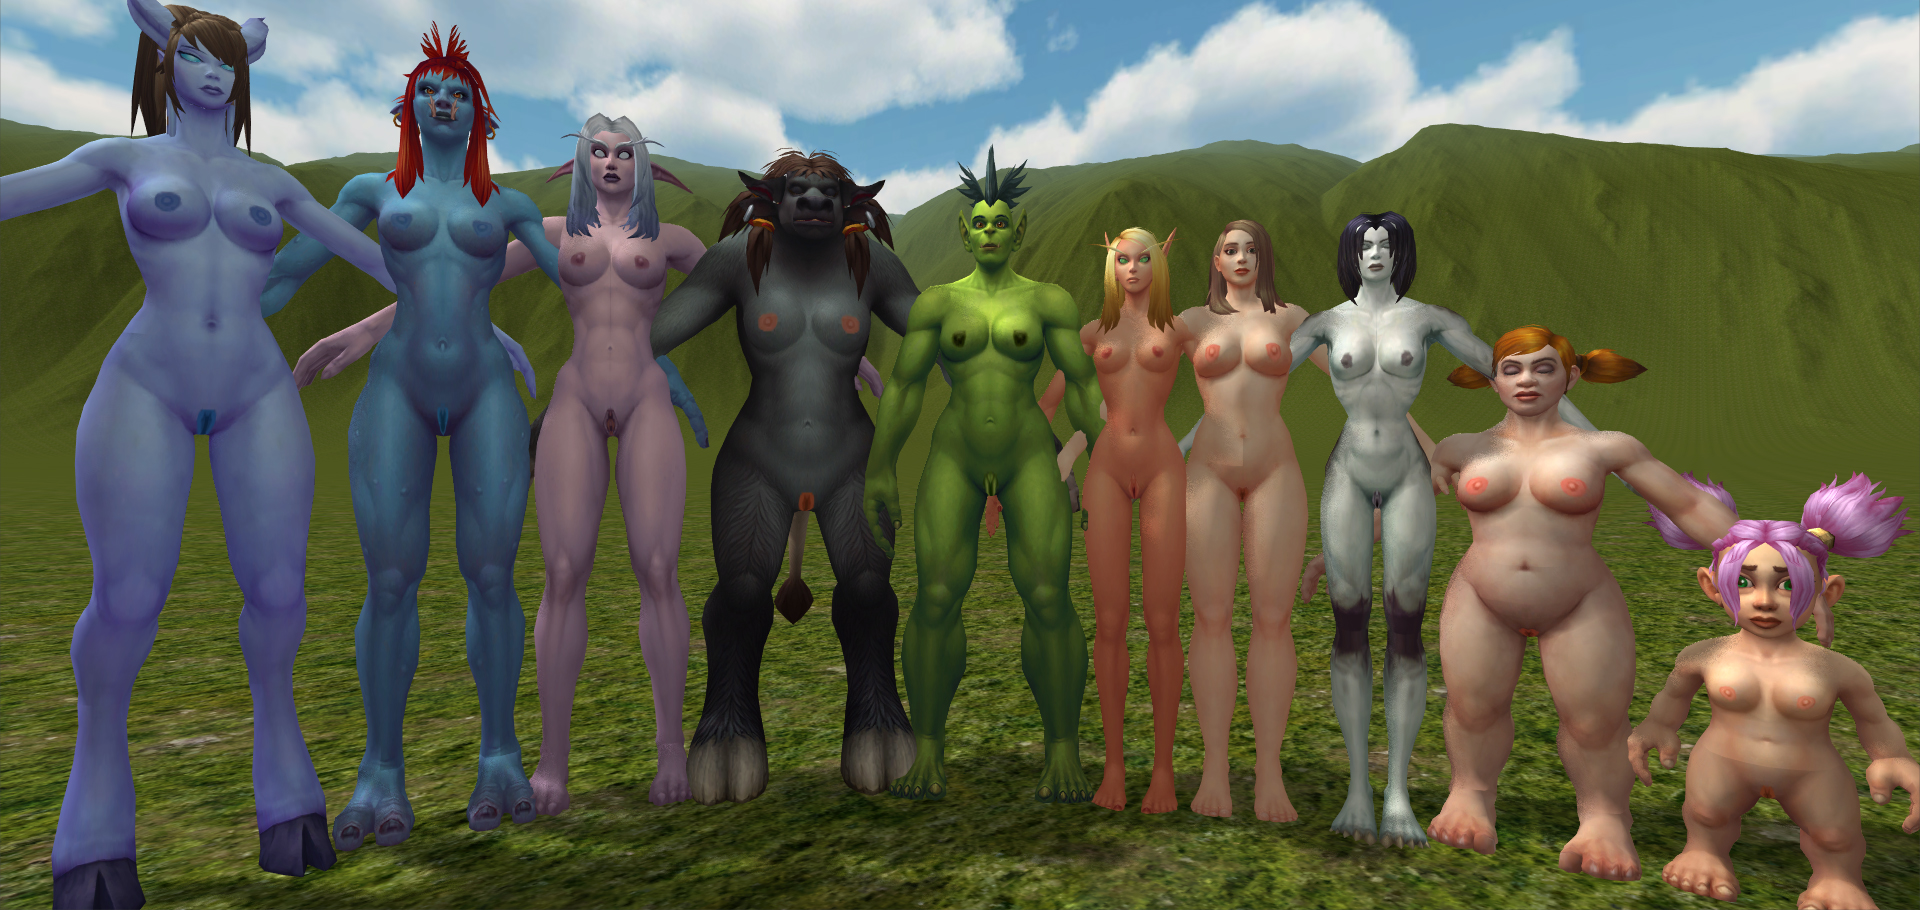 Nude patch world warcraft nsfw pics